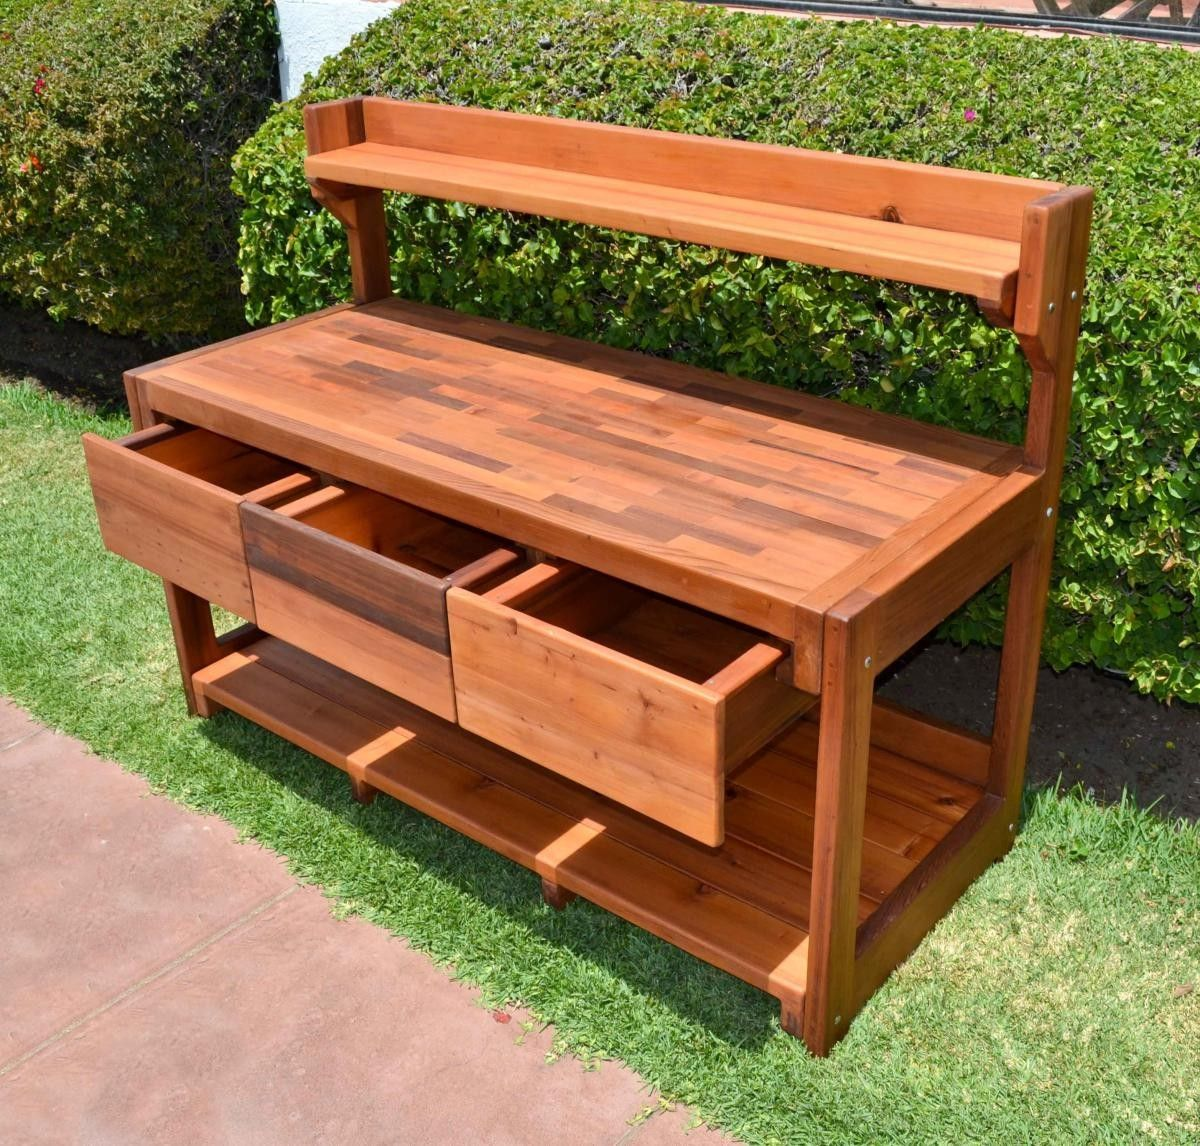 Elis Potting Bench Options Old Growth Redwood Casters 2